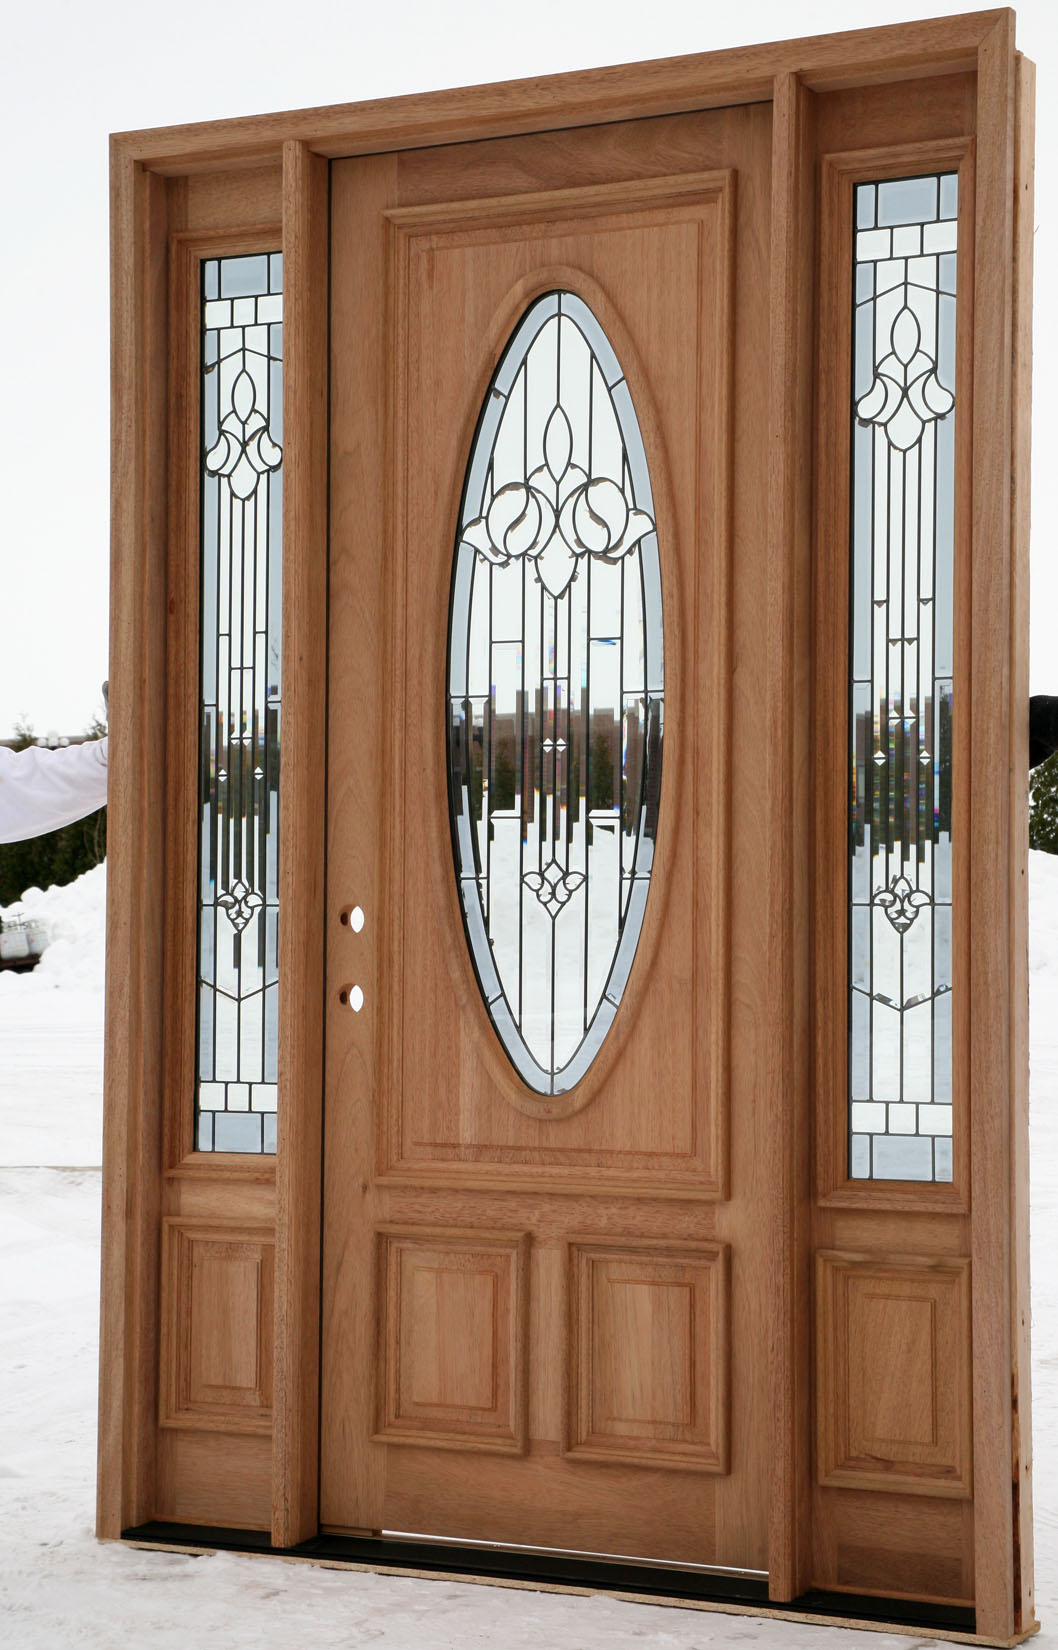 Exterior Wood Entry Doors 1058 x 1650